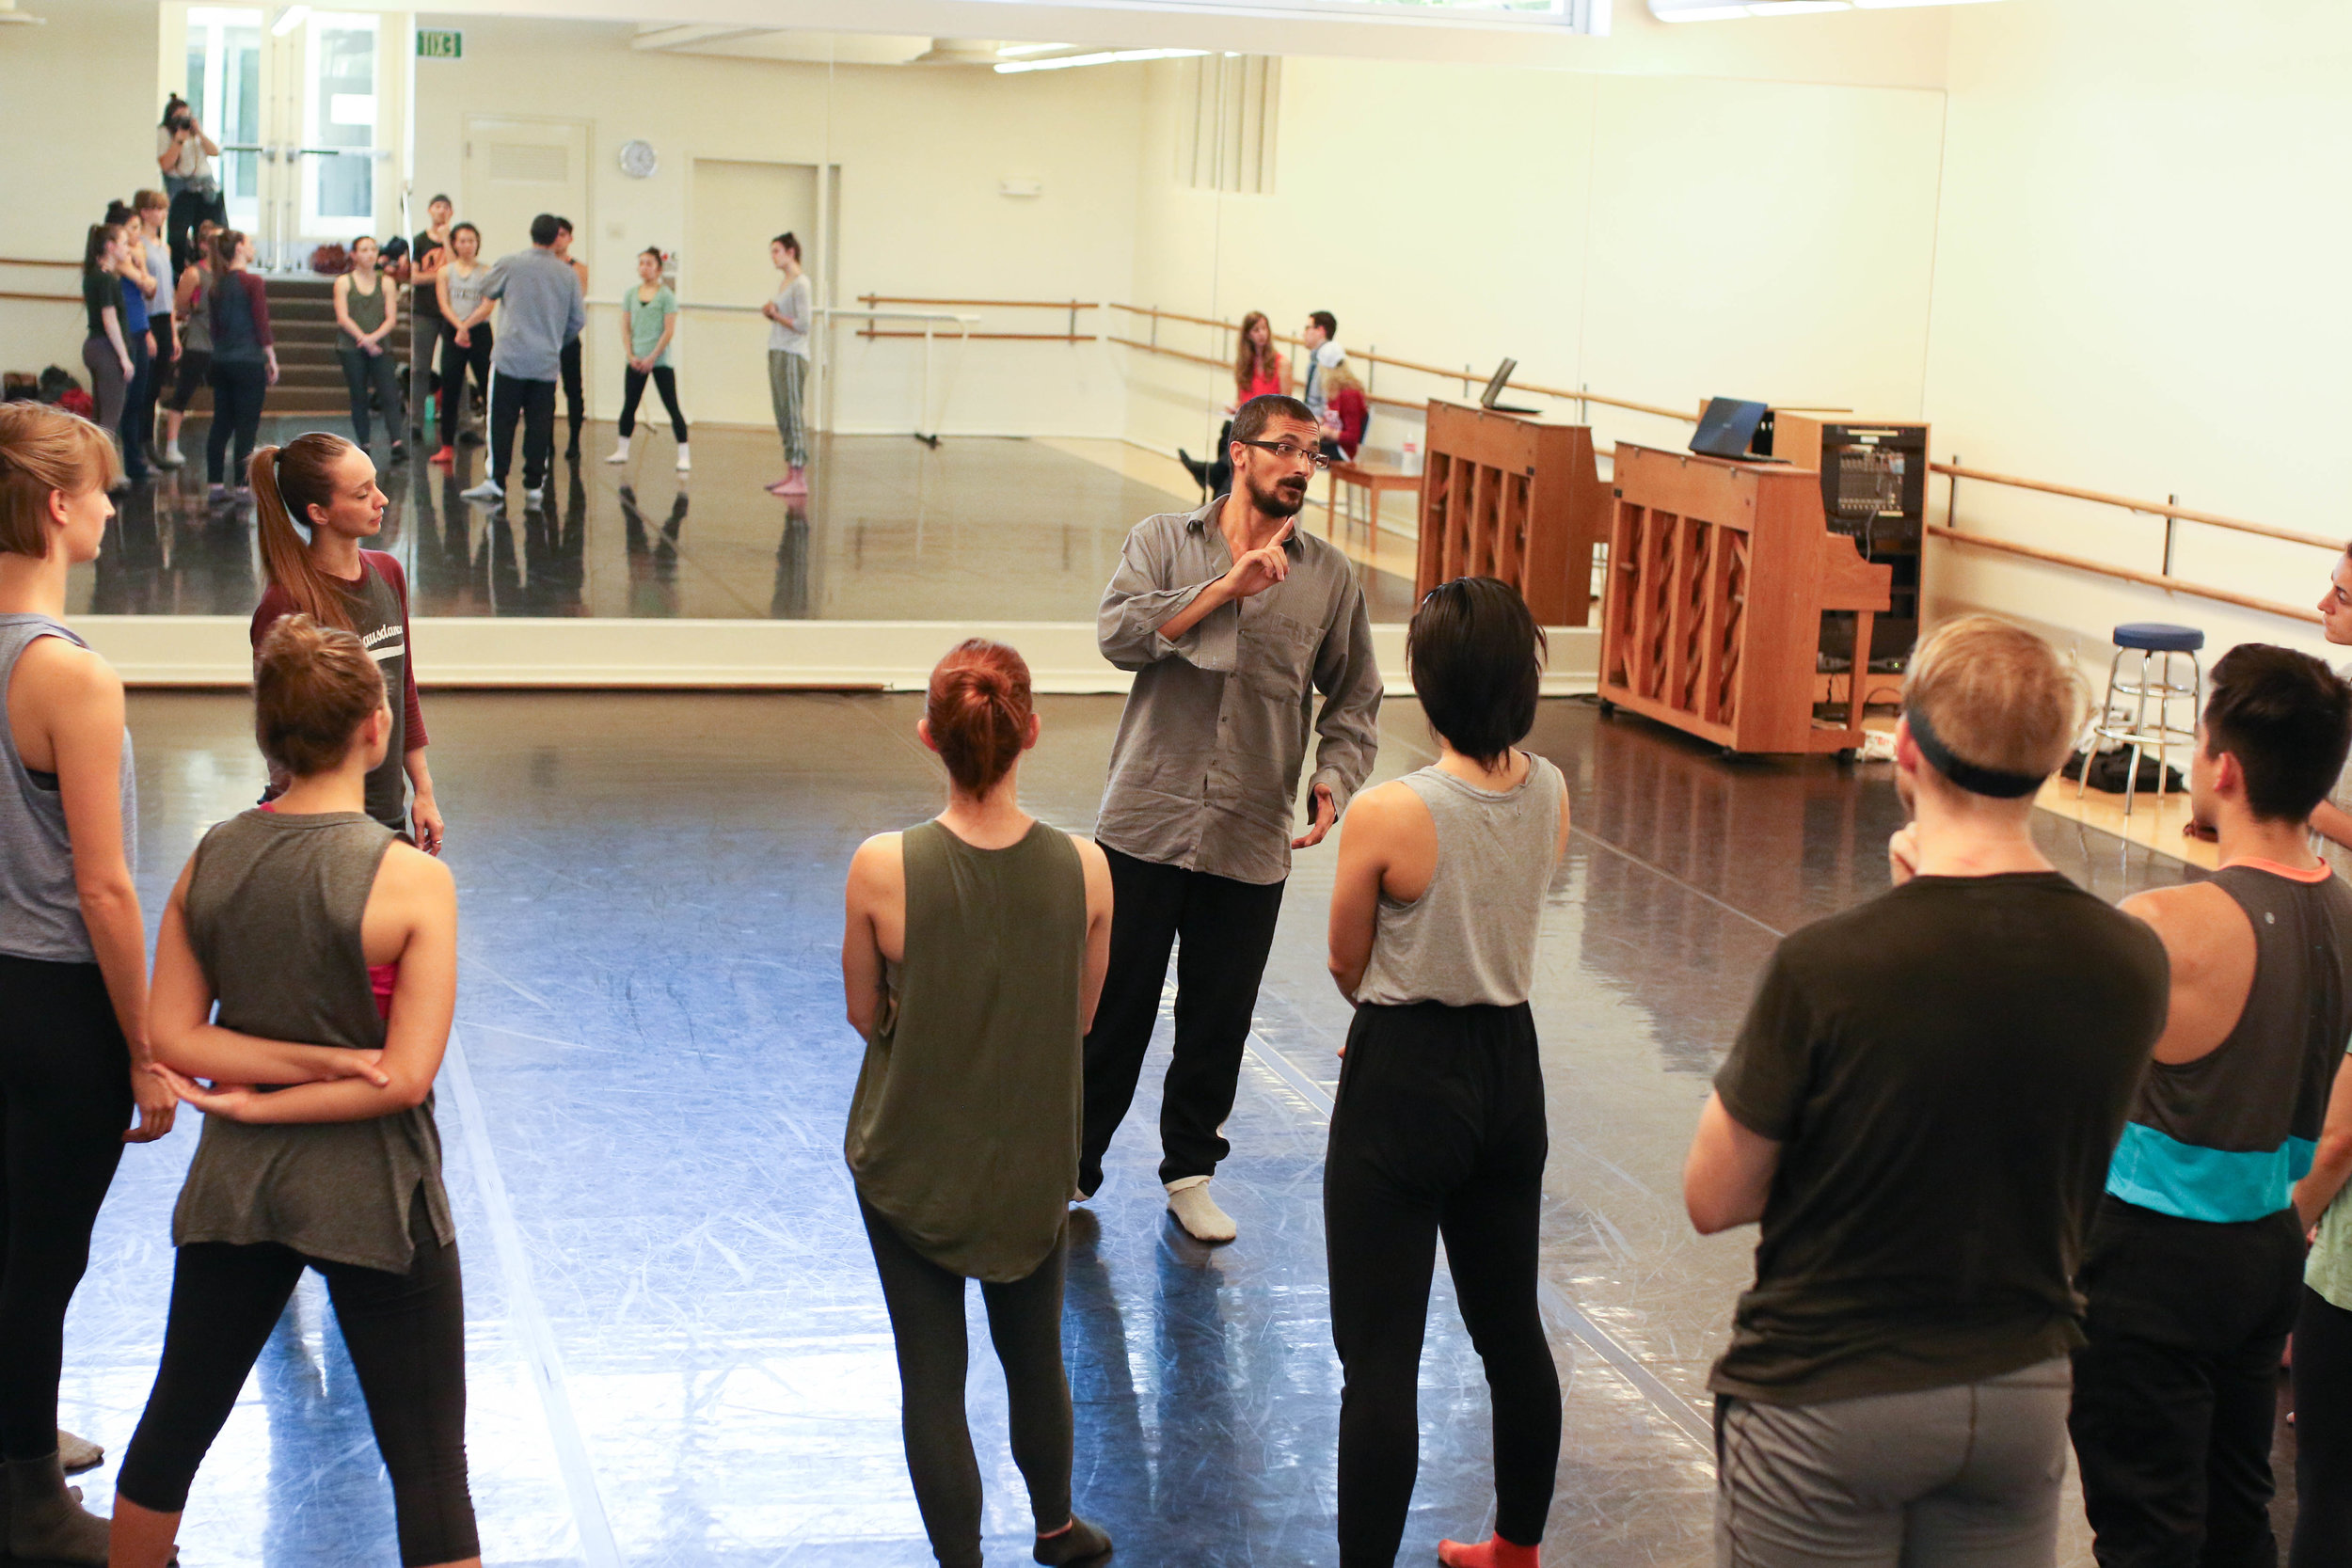 Italy's Walter Matteini rehearsing  Beyond the Noise , premiering in February 2017 at the Musco Center for the Arts. Photo by Sarah Delgado.